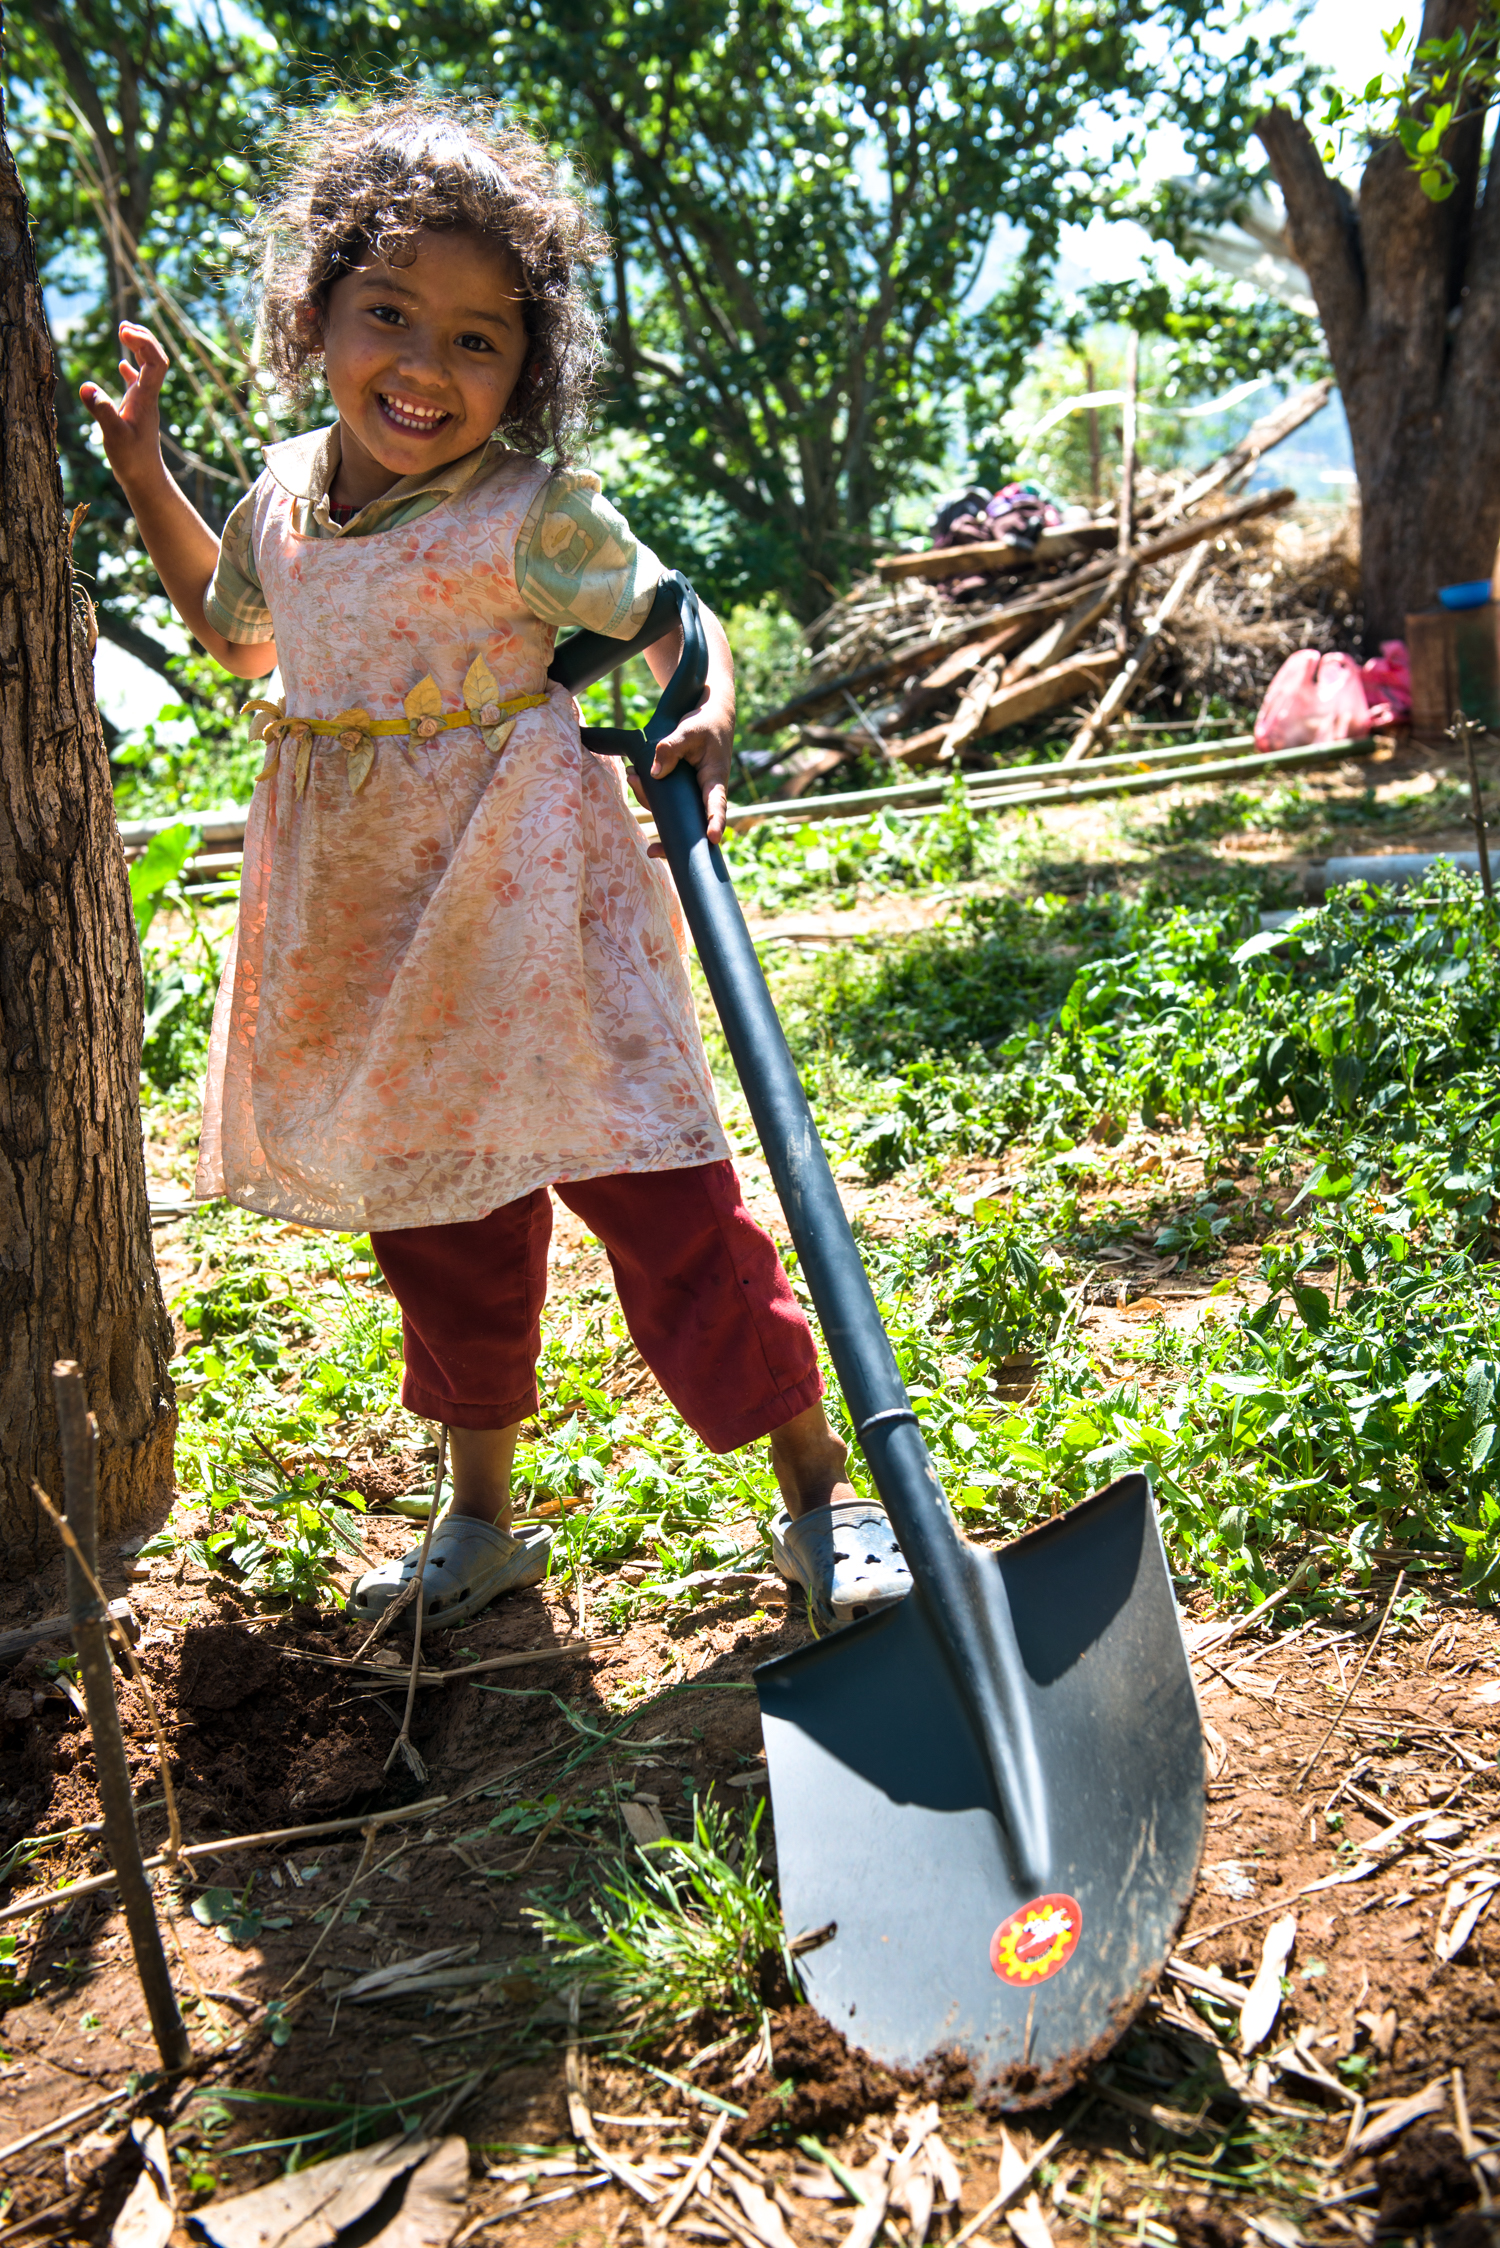 A cute nepalese girl playfully helps us shovel.